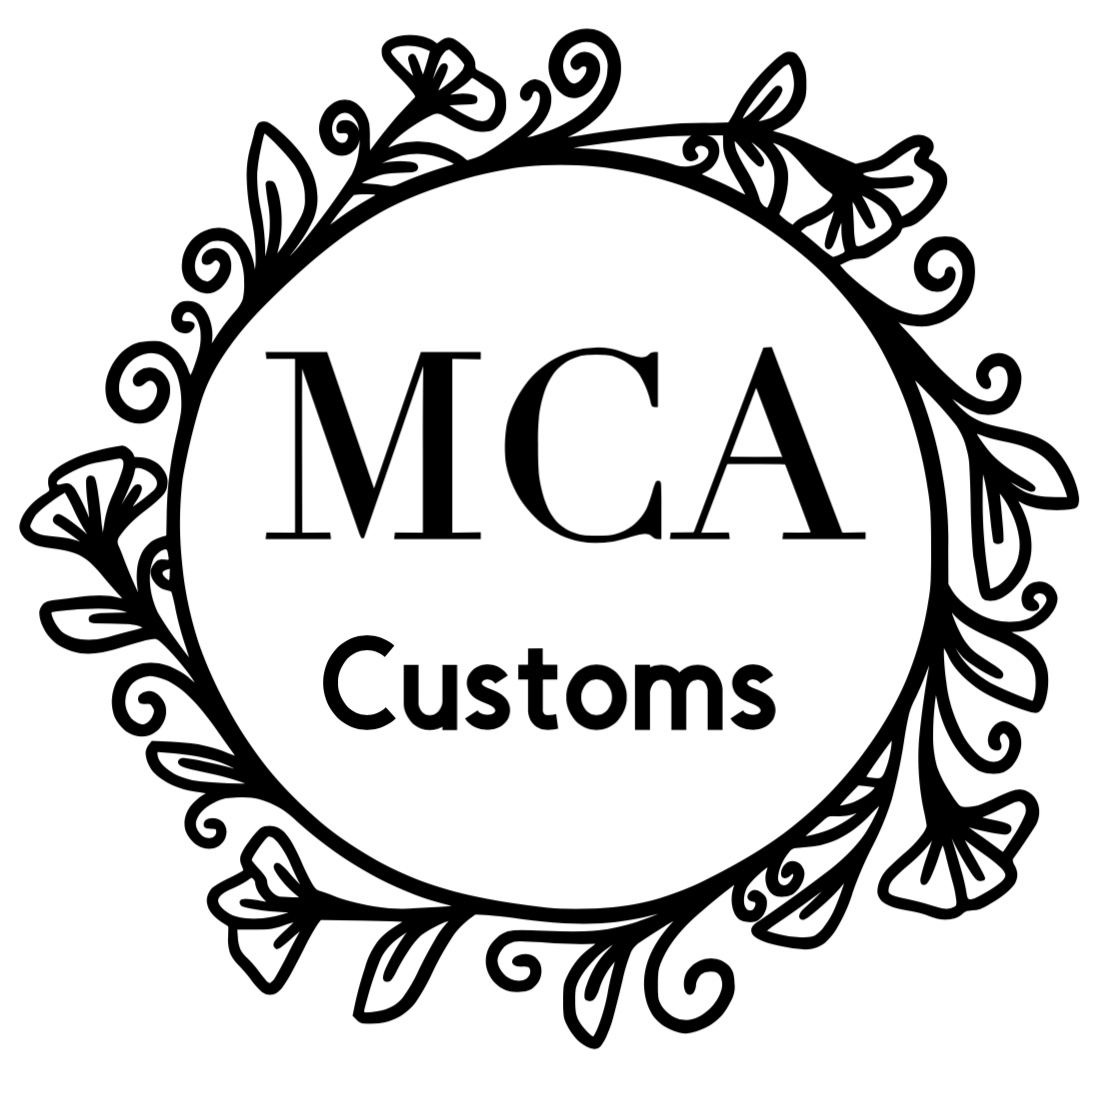 MCA Customs image